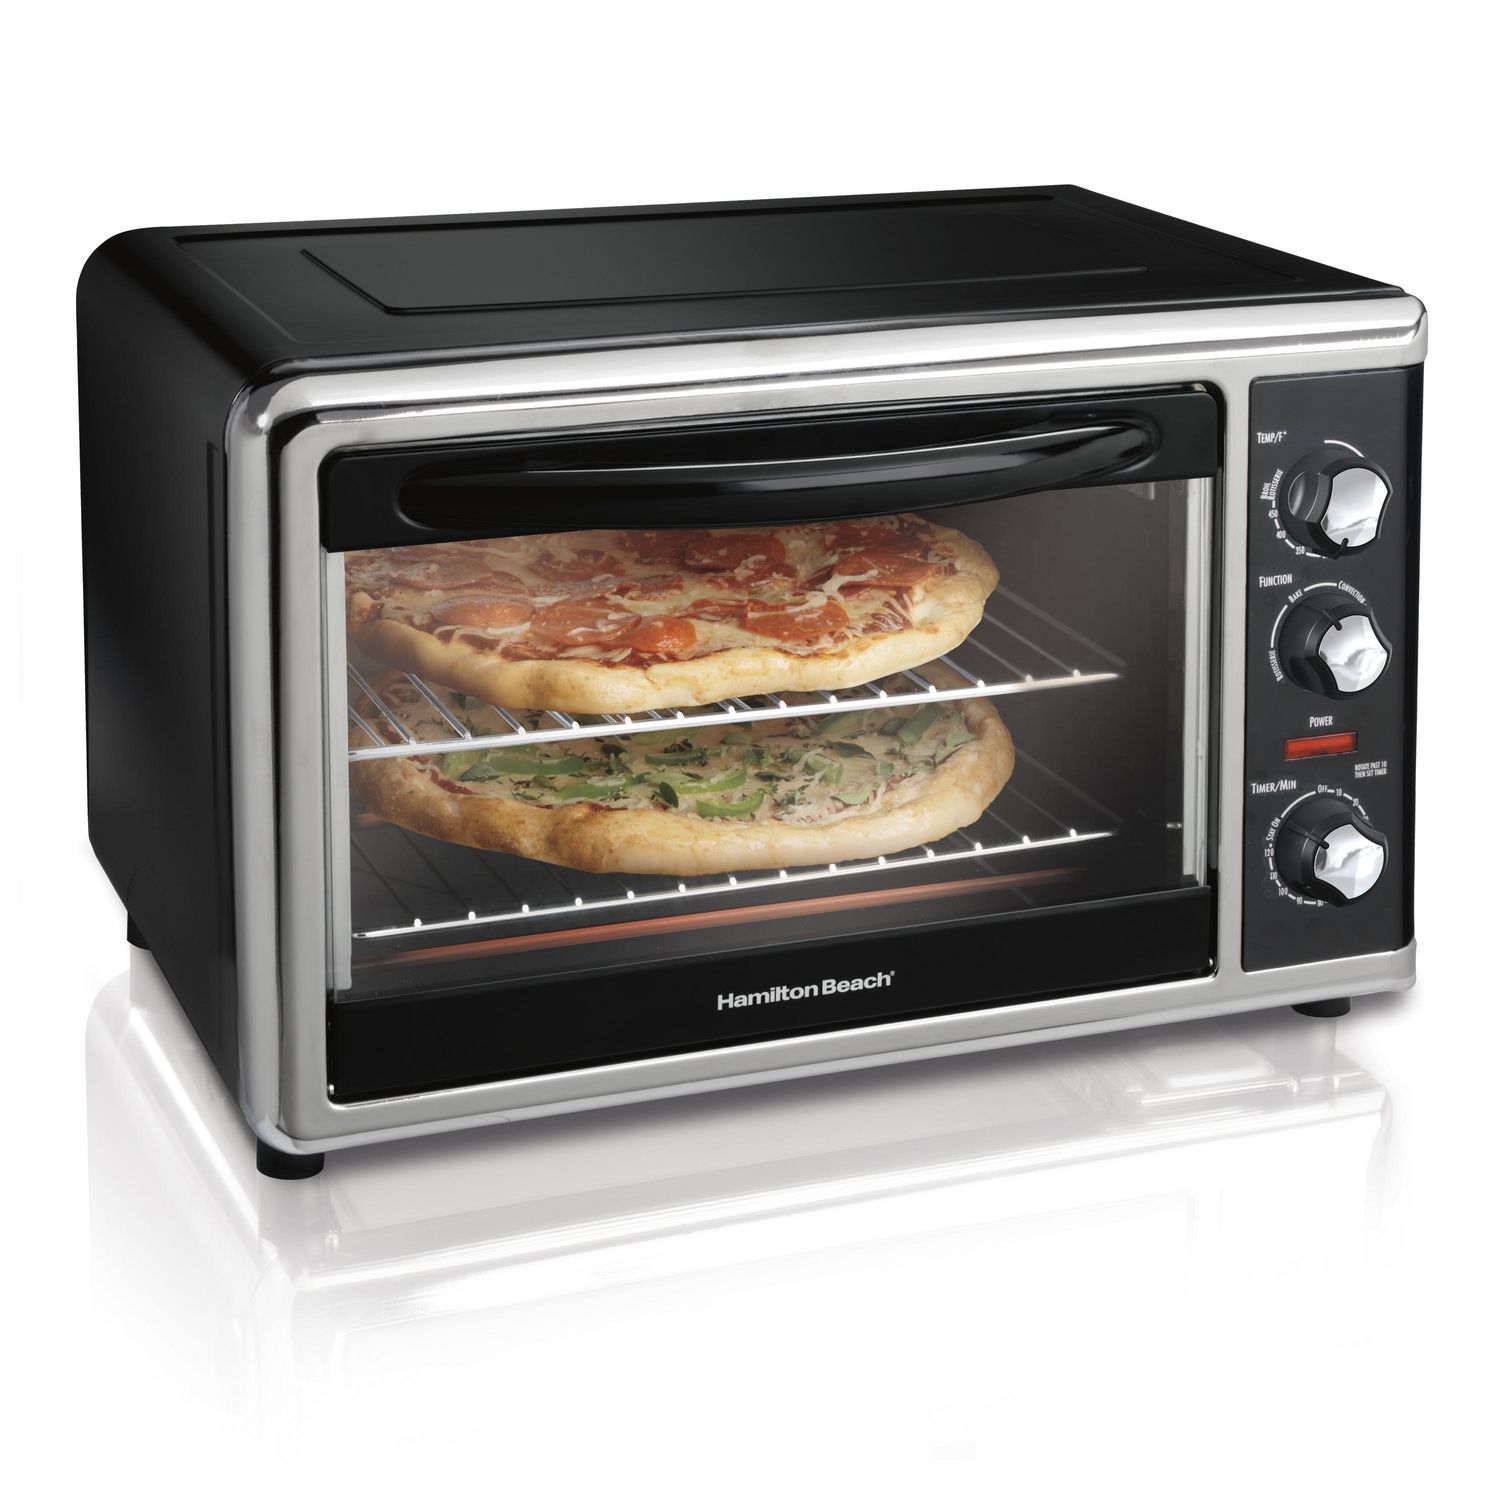 Hamilton Beach Countertop Oven With Convection Rotisserie Walmart Canada